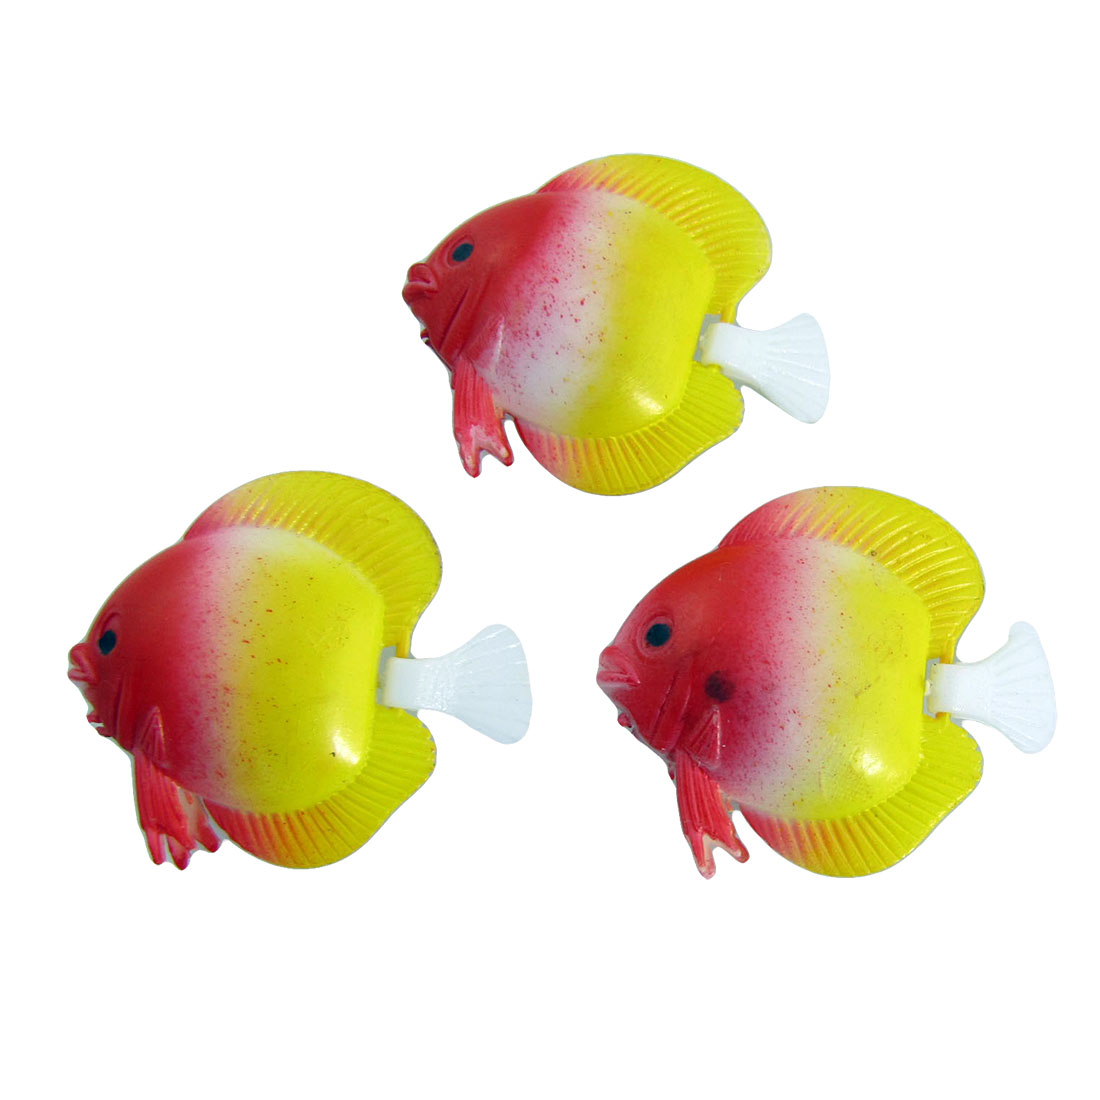 Aquarium Yellow Red Wiggle Tail Mini Fish Decoration 3Pcs